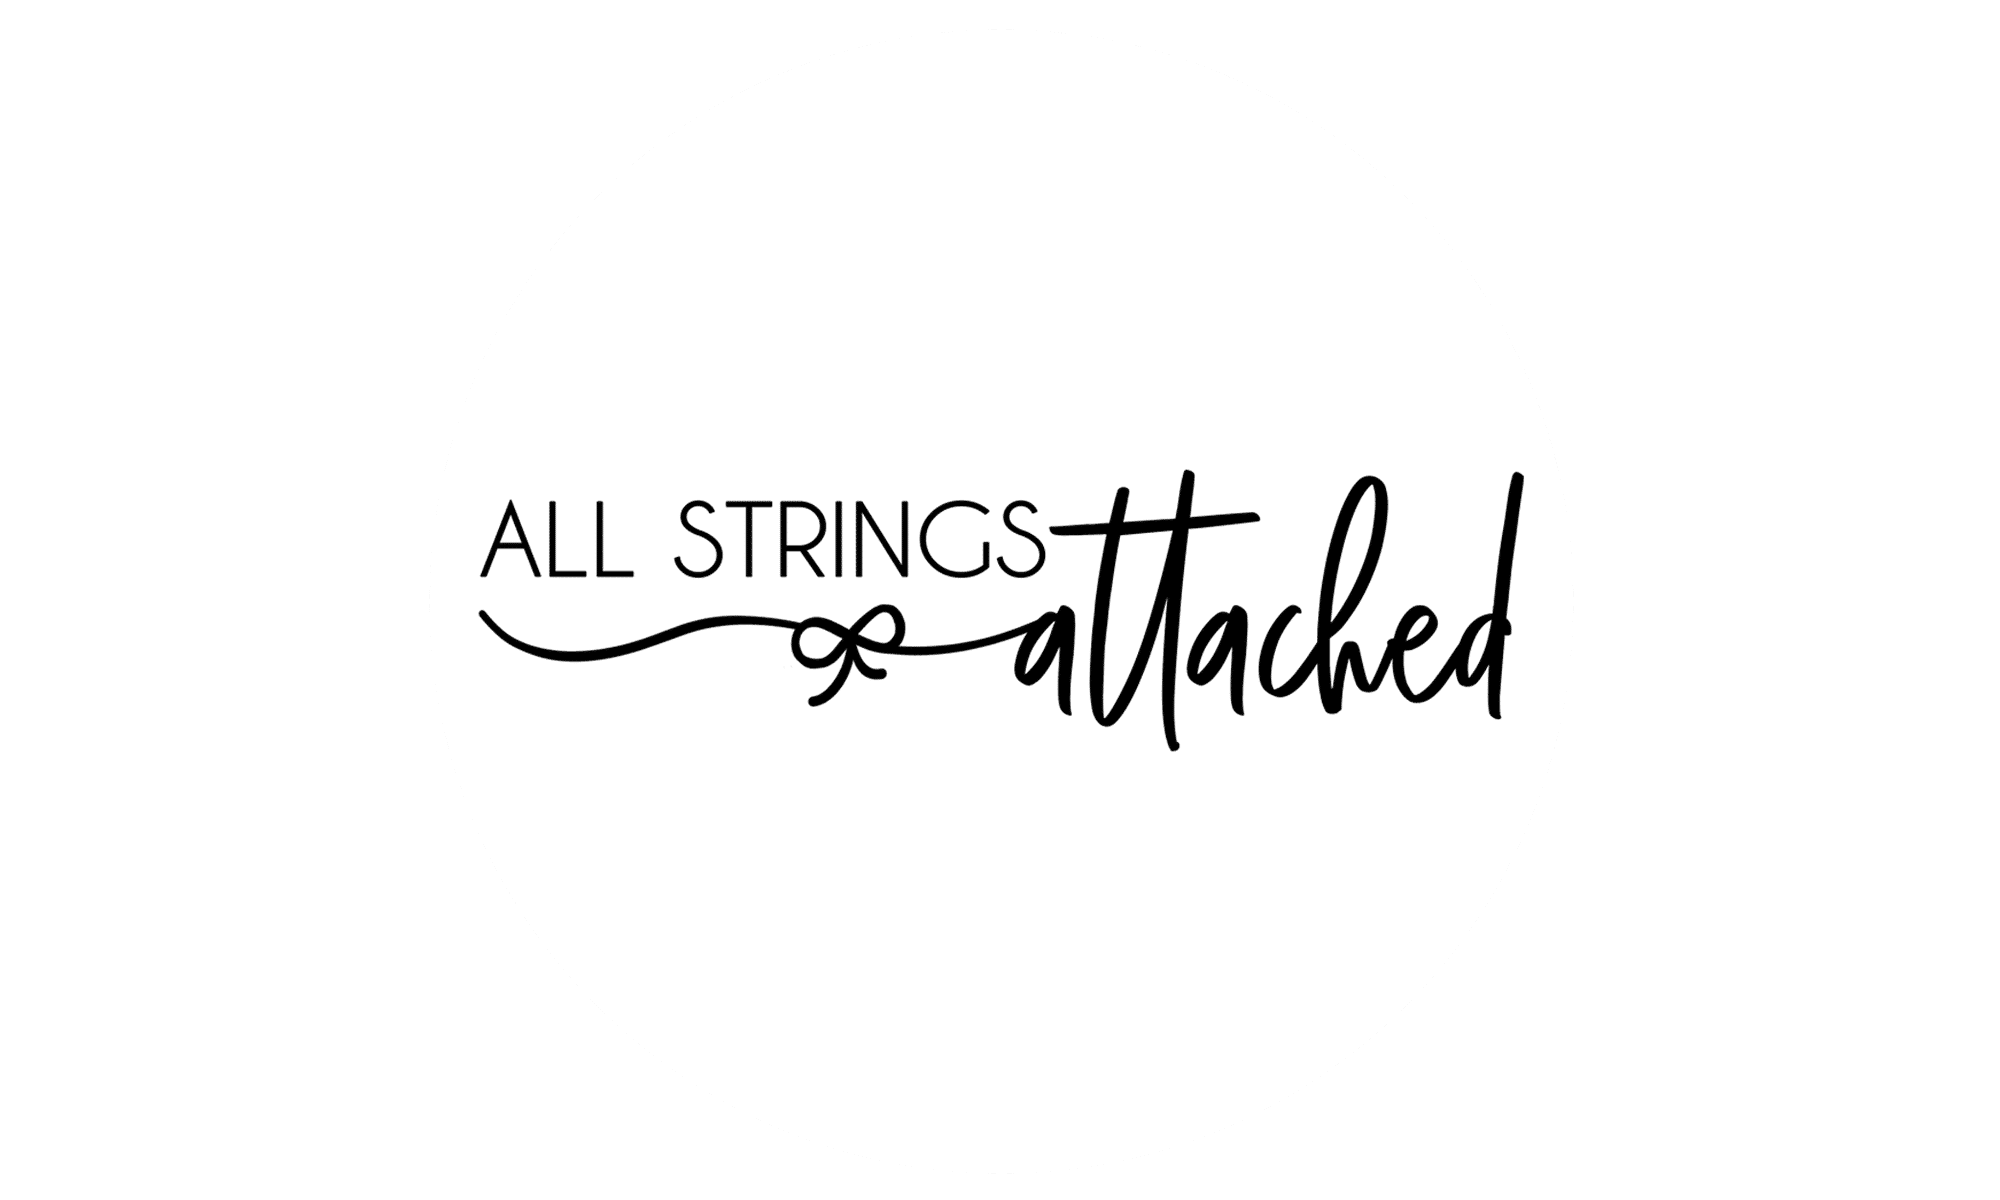 All strings attached logo